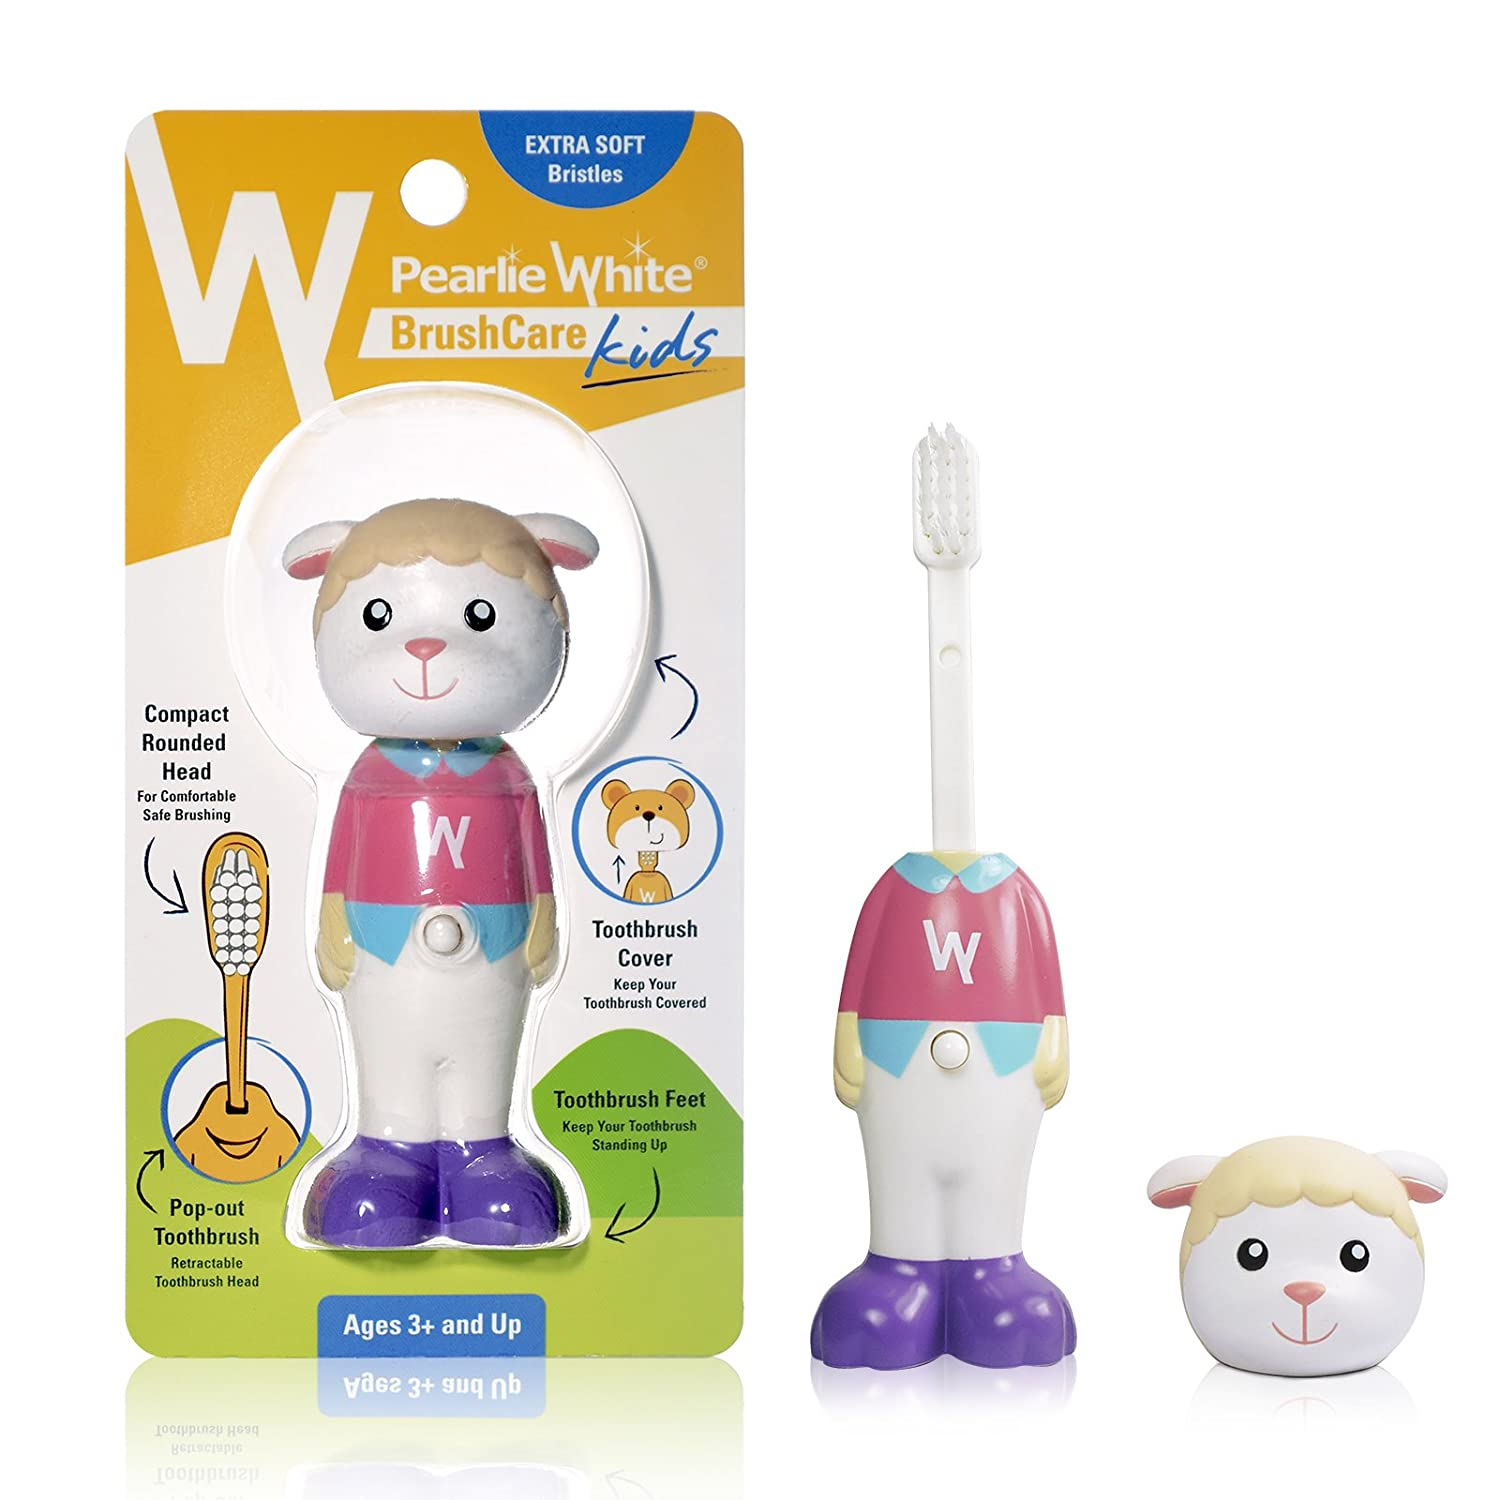 Pearlie White BrushCare Kids (Sheep)